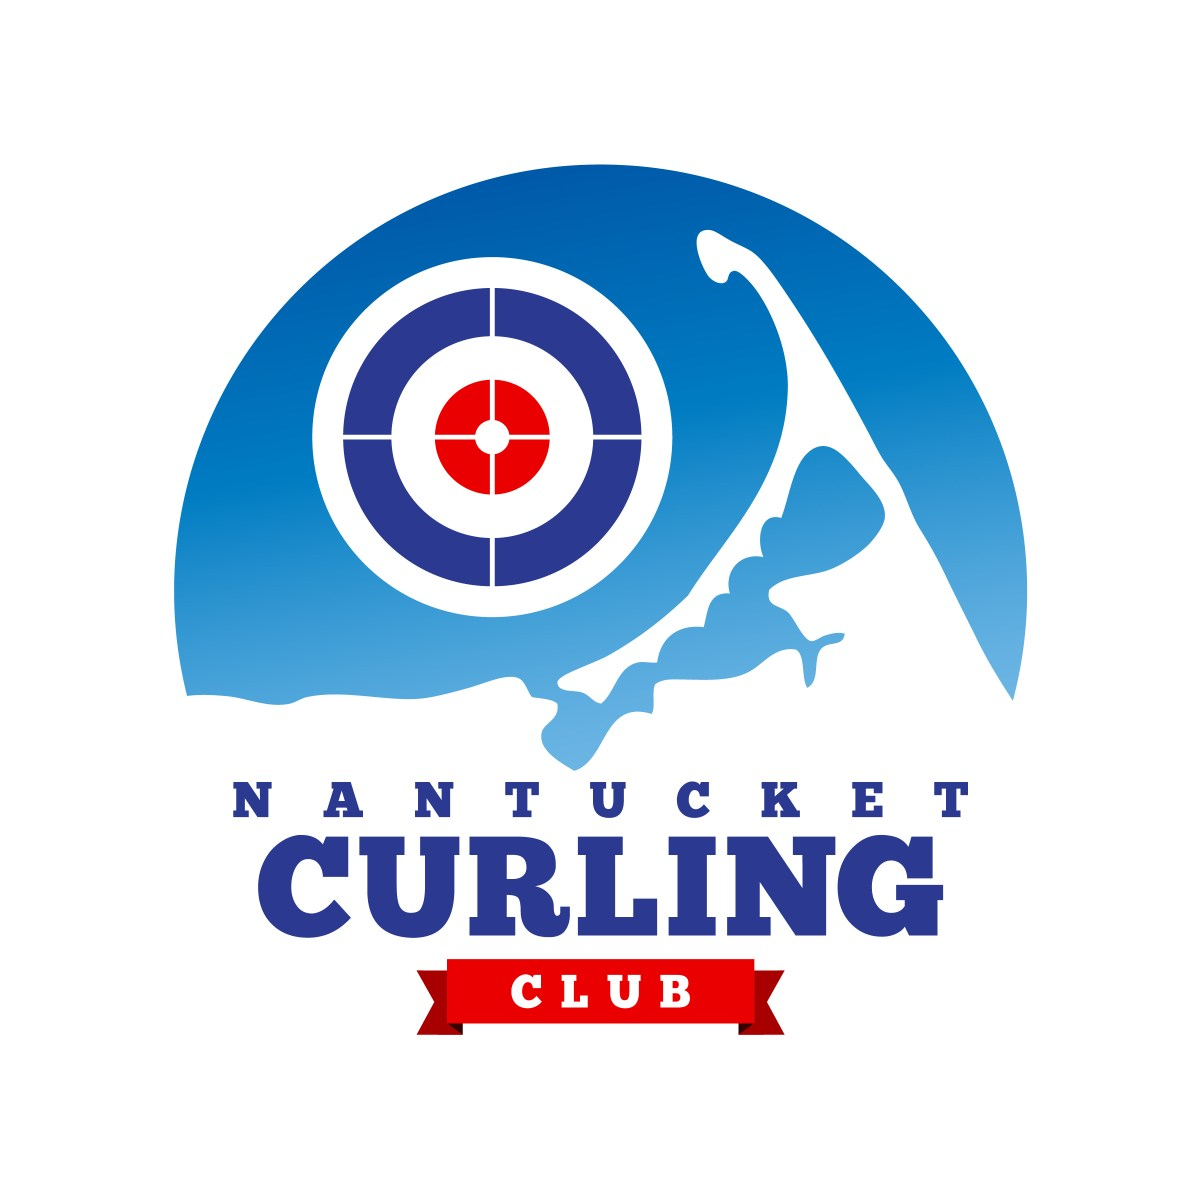 Nantucket Curling Club Logo